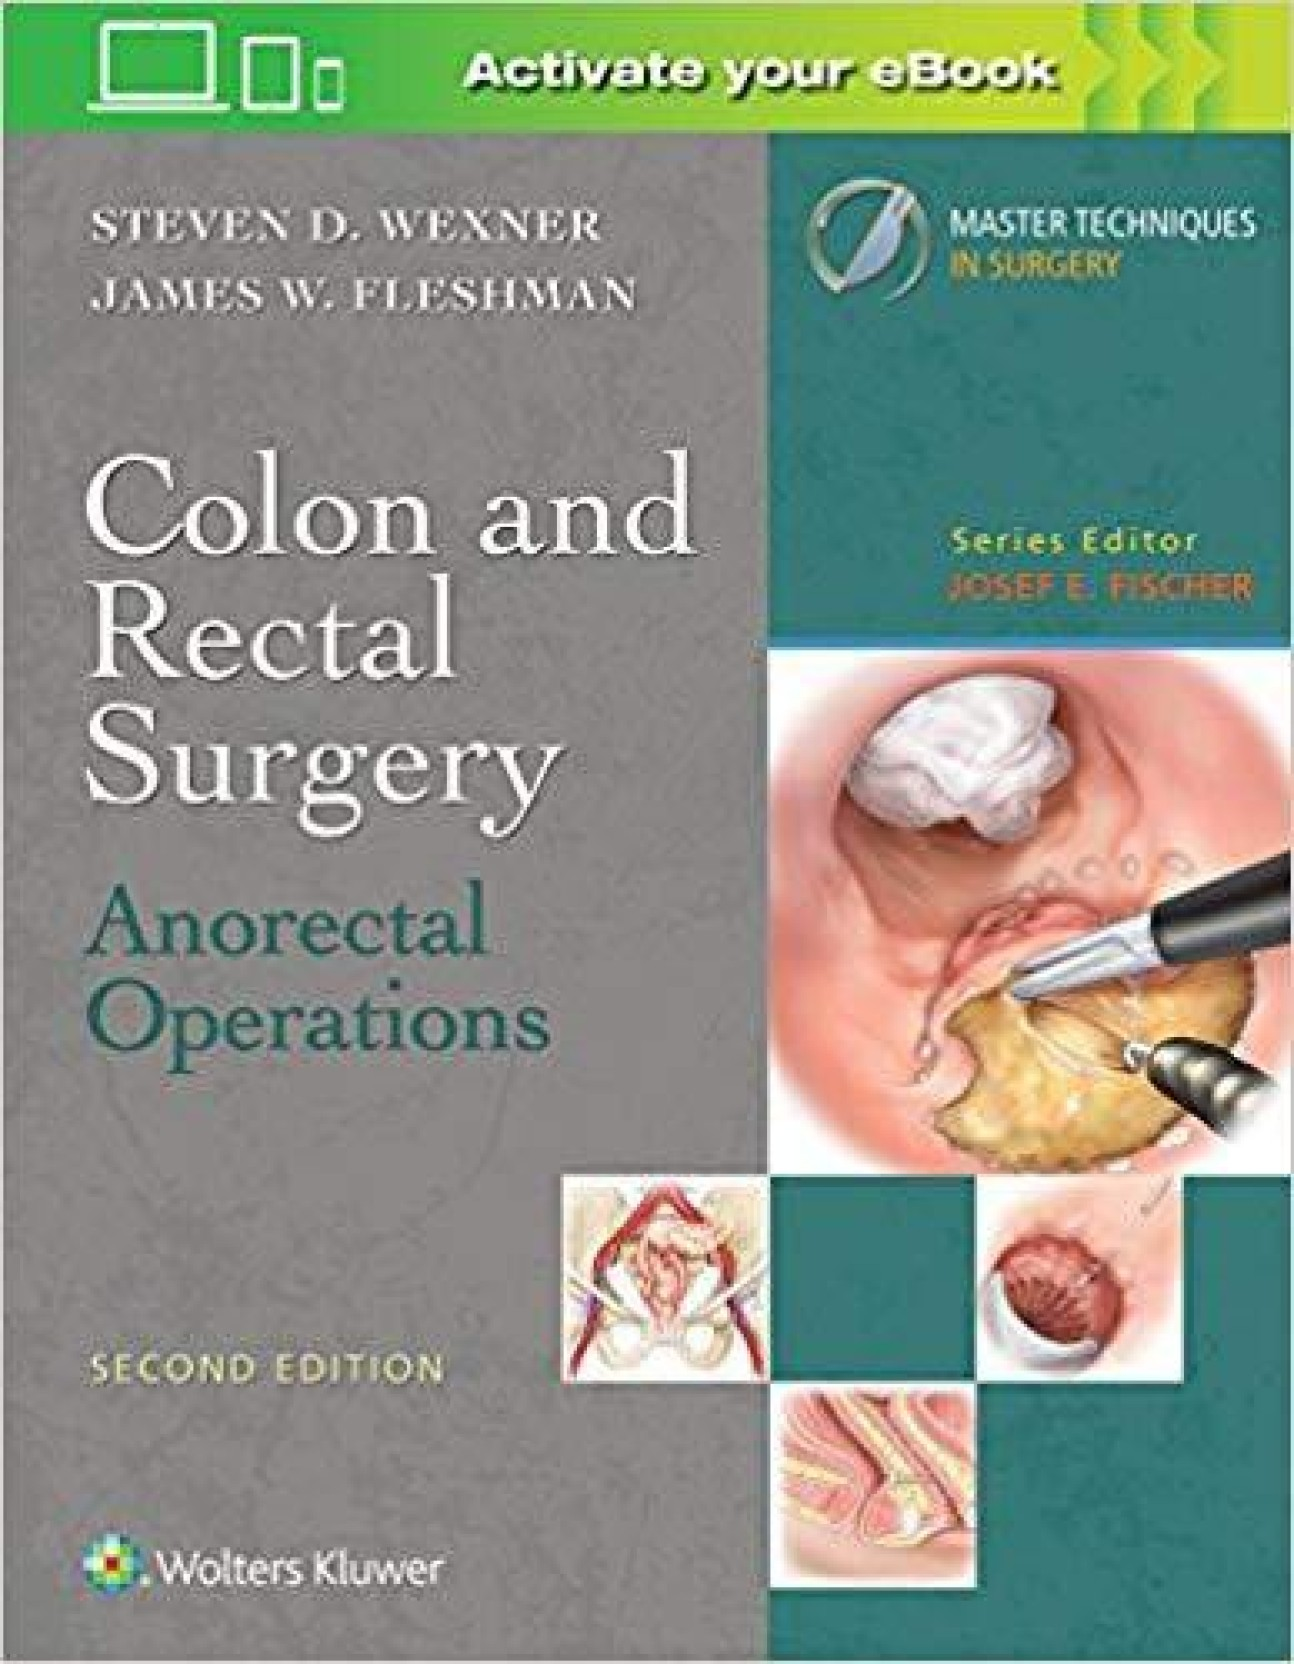 Colon and Rectal Surgery: Anorectal Operations (Master